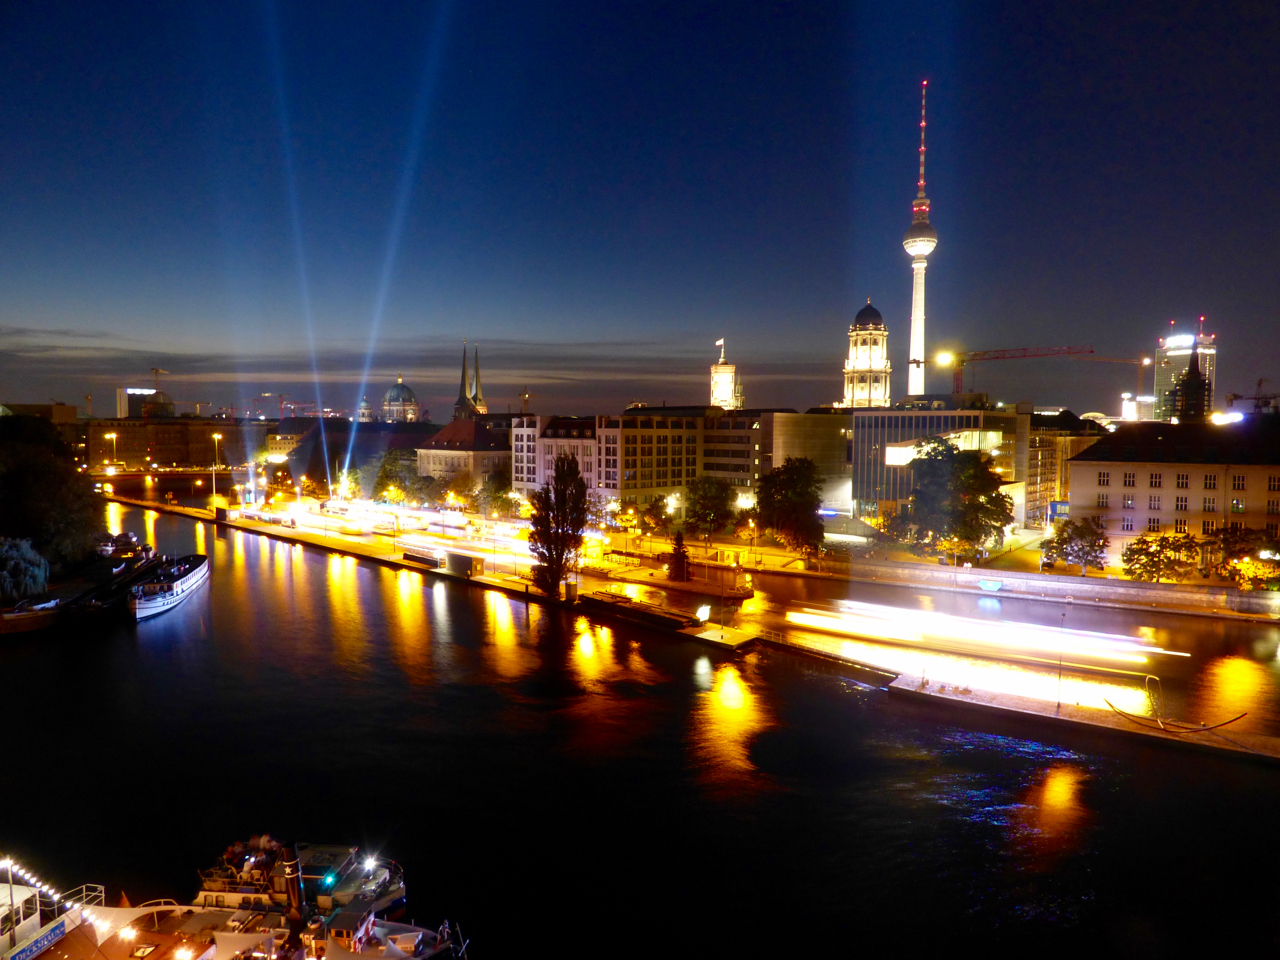 Berlin, Germany skyline